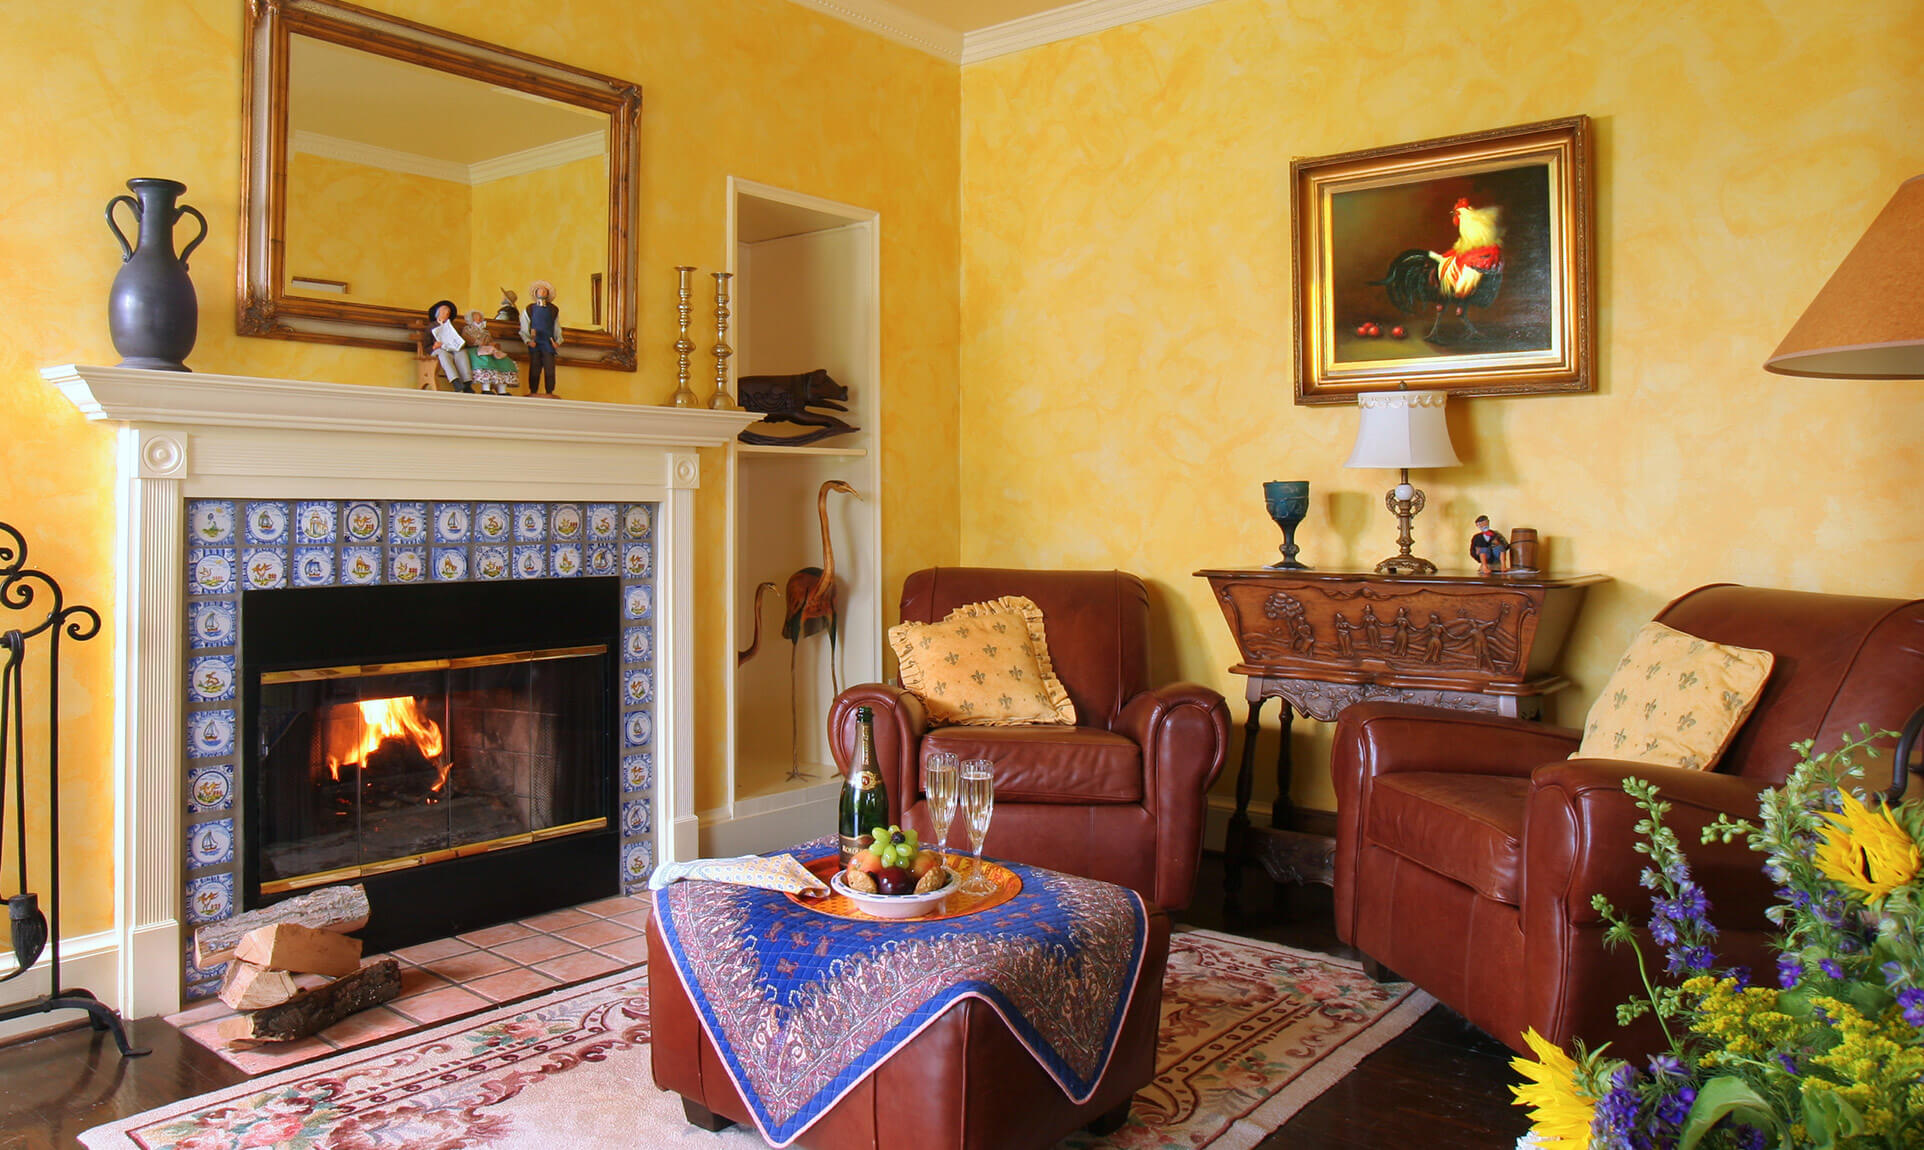 Van Gogh Suite sitting area with fireplace at our Shenandoah Valley B&B